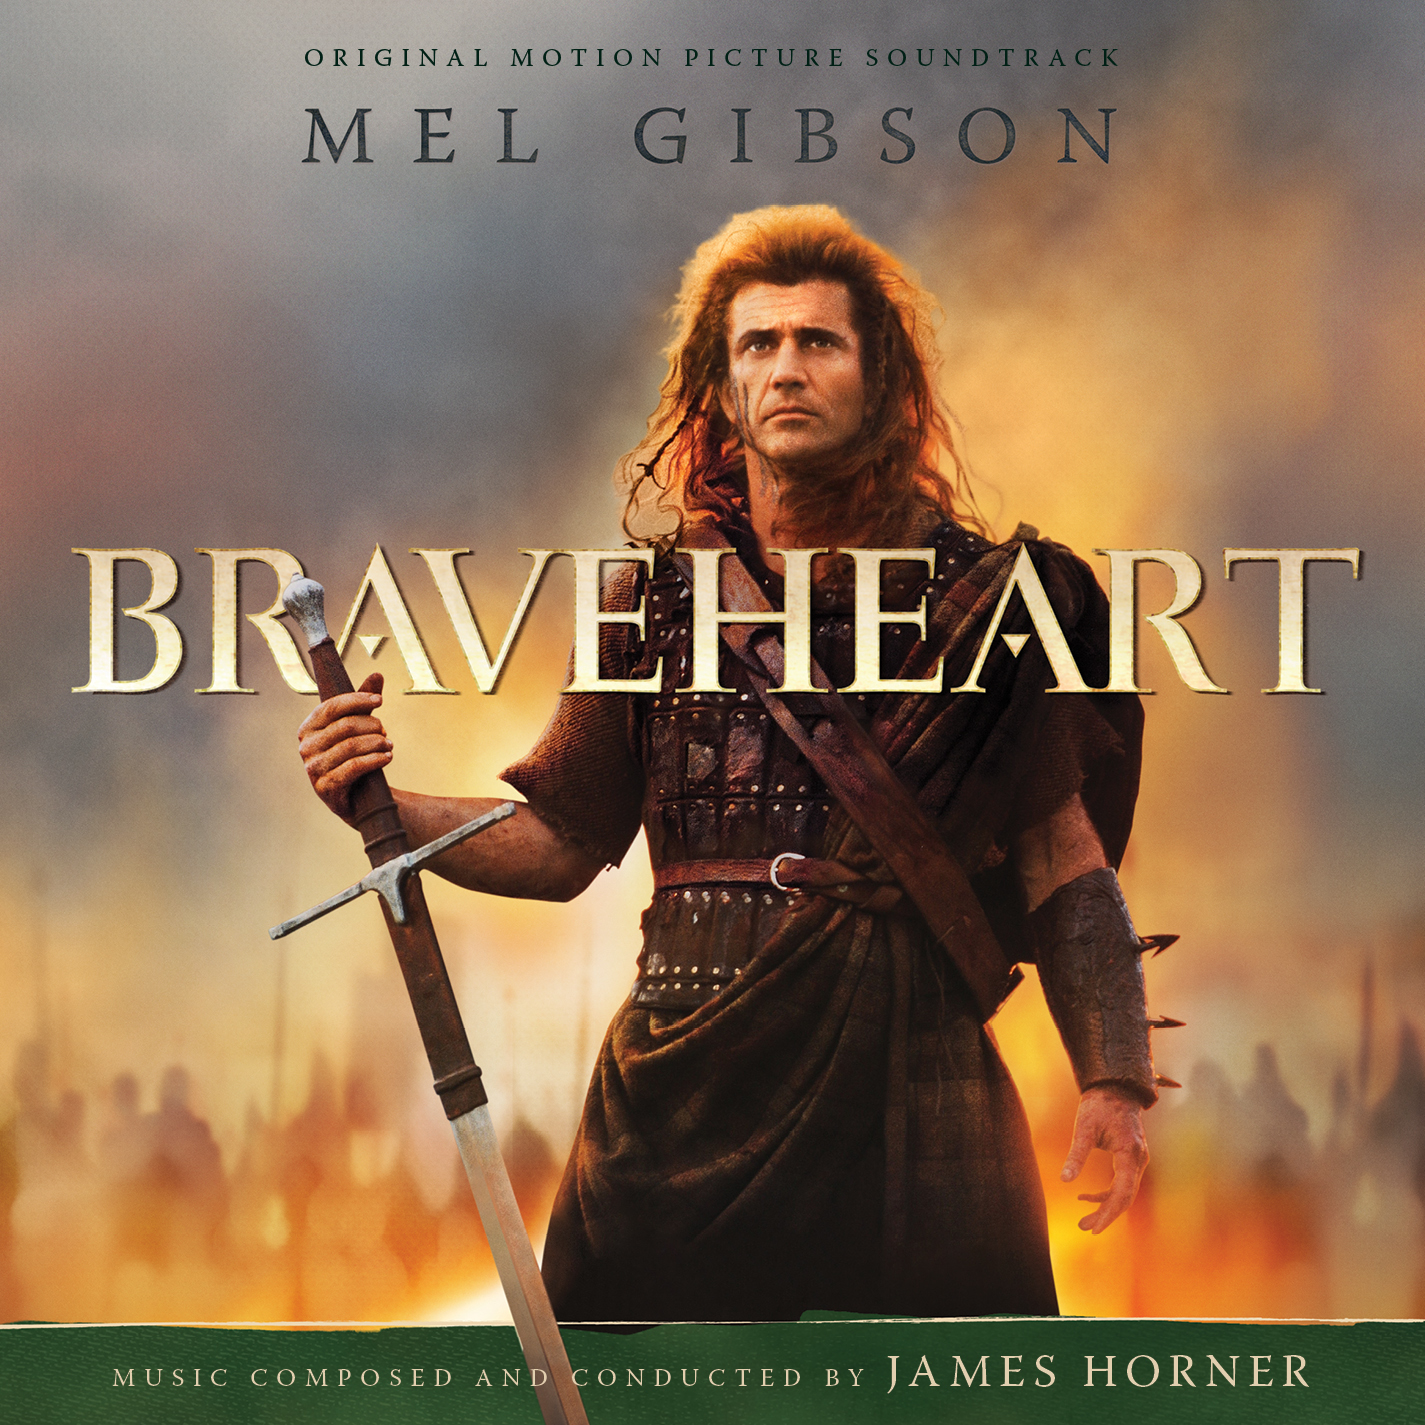 HQ Braveheart Wallpapers | File 1386.62Kb